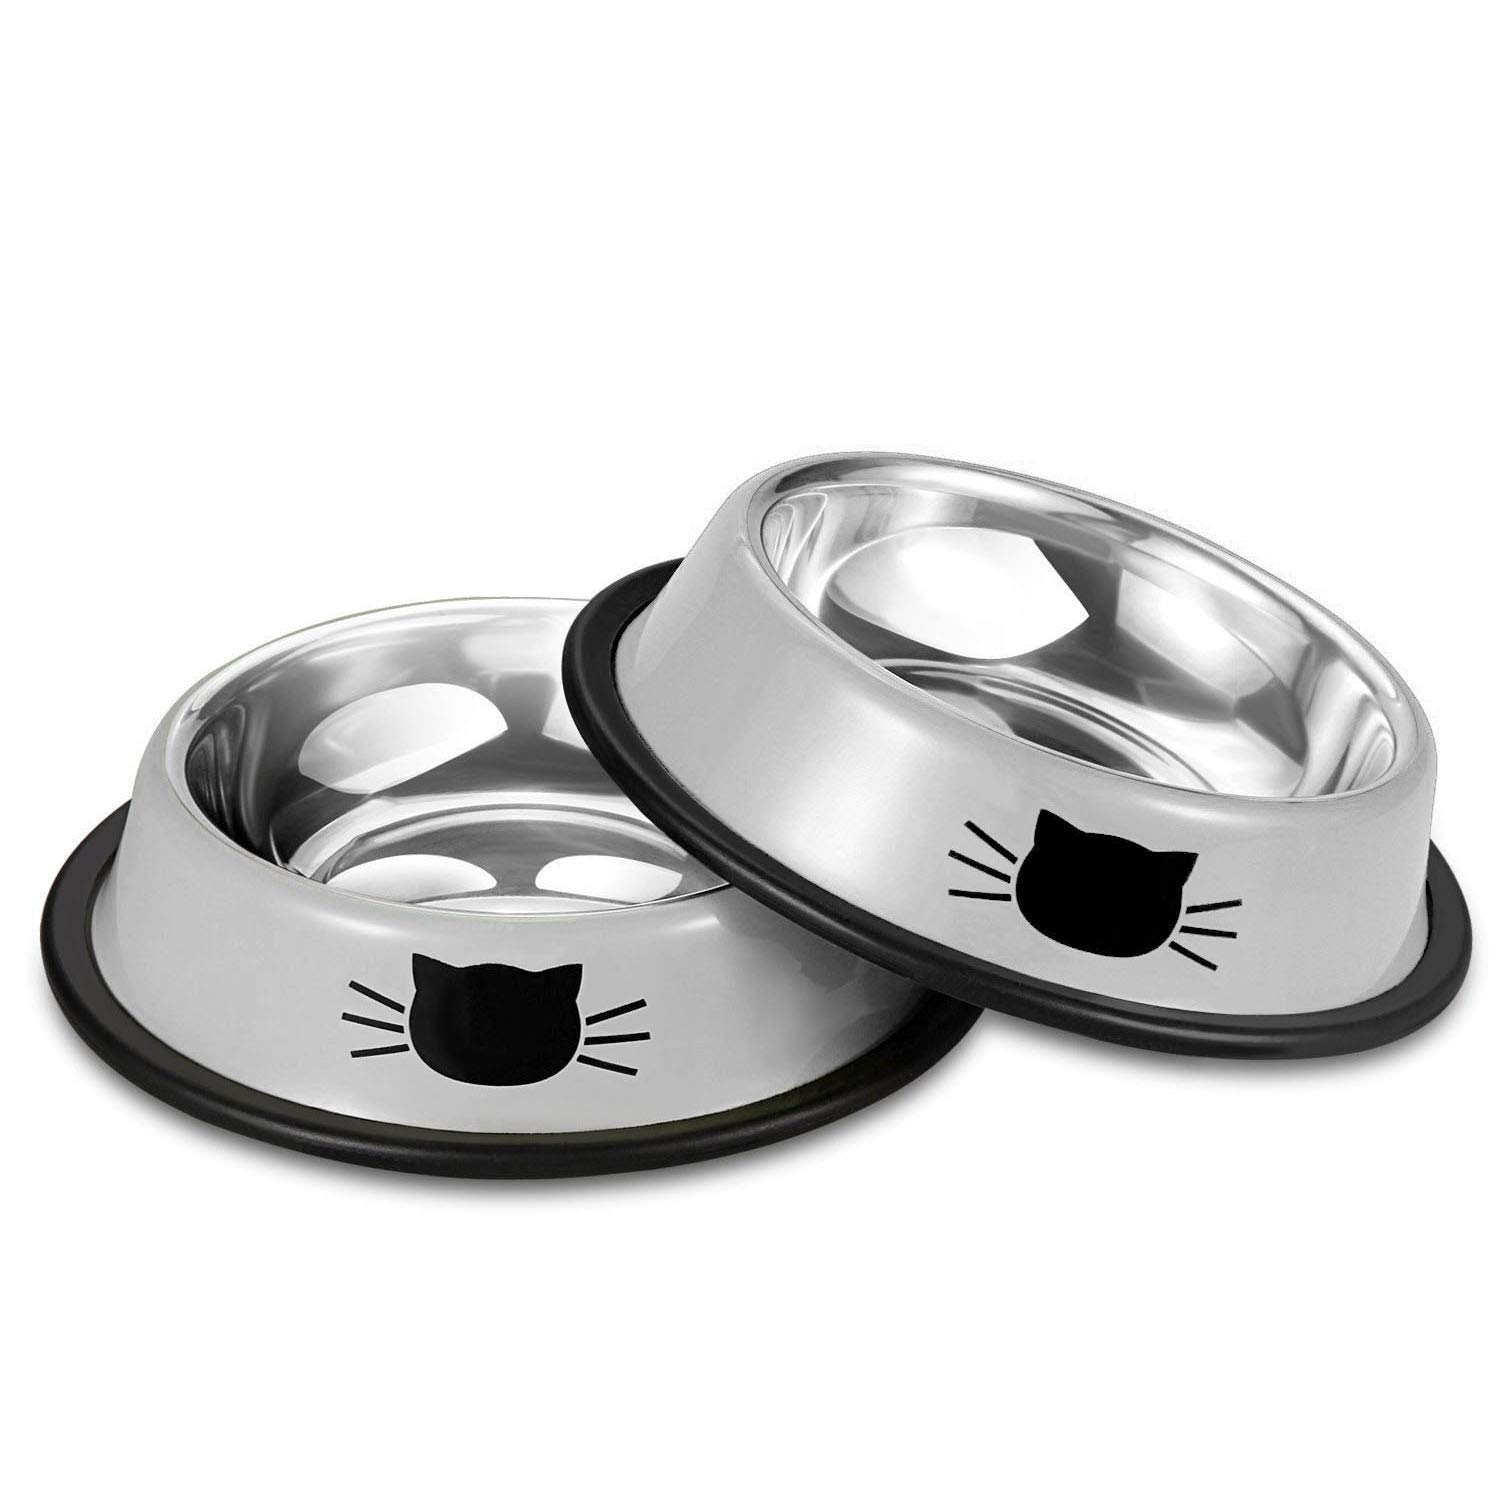 Comsmart Stainless Steel Pet Cat Bowl Puppy Dish Bowl with Cute Cats Painted Non-Skid for Small Dogs Cats (2 Pack) (Grey Grey)